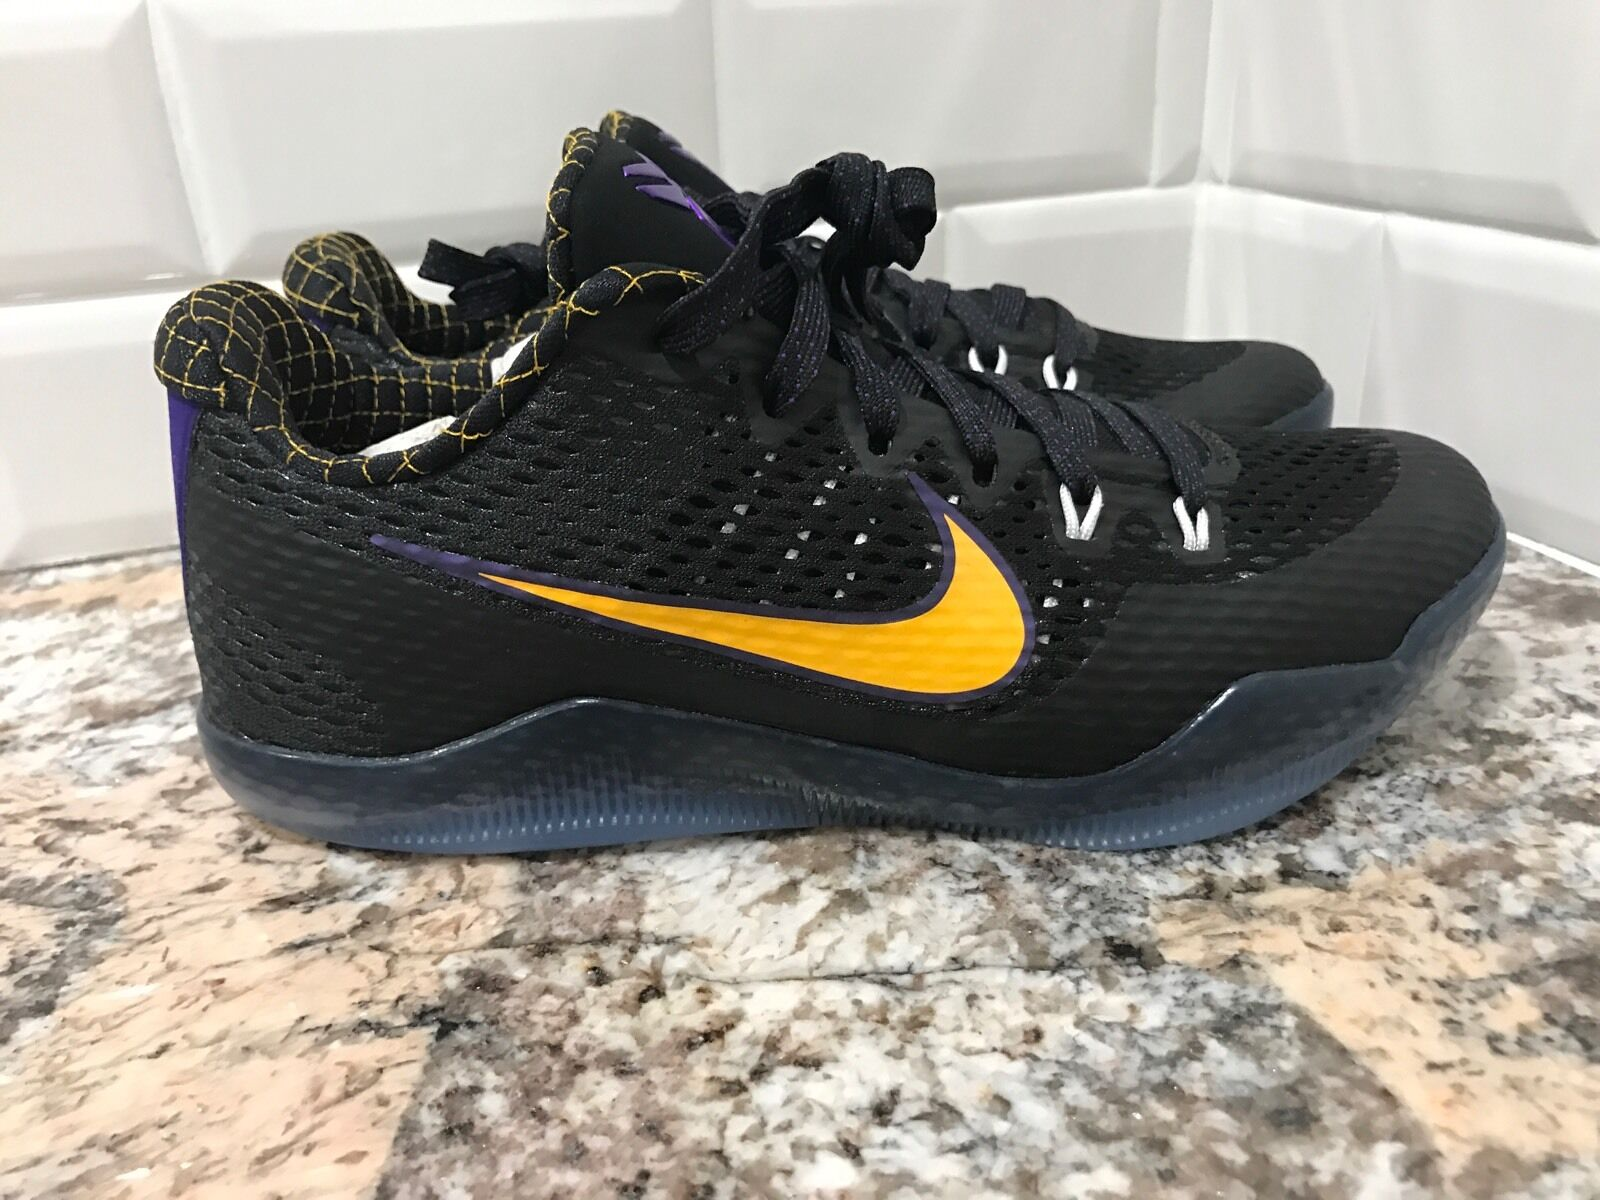 Nike Kobe XI 11 Carpe Diem SZ 7 Black White Court Purple gold 836183-015 Bryant